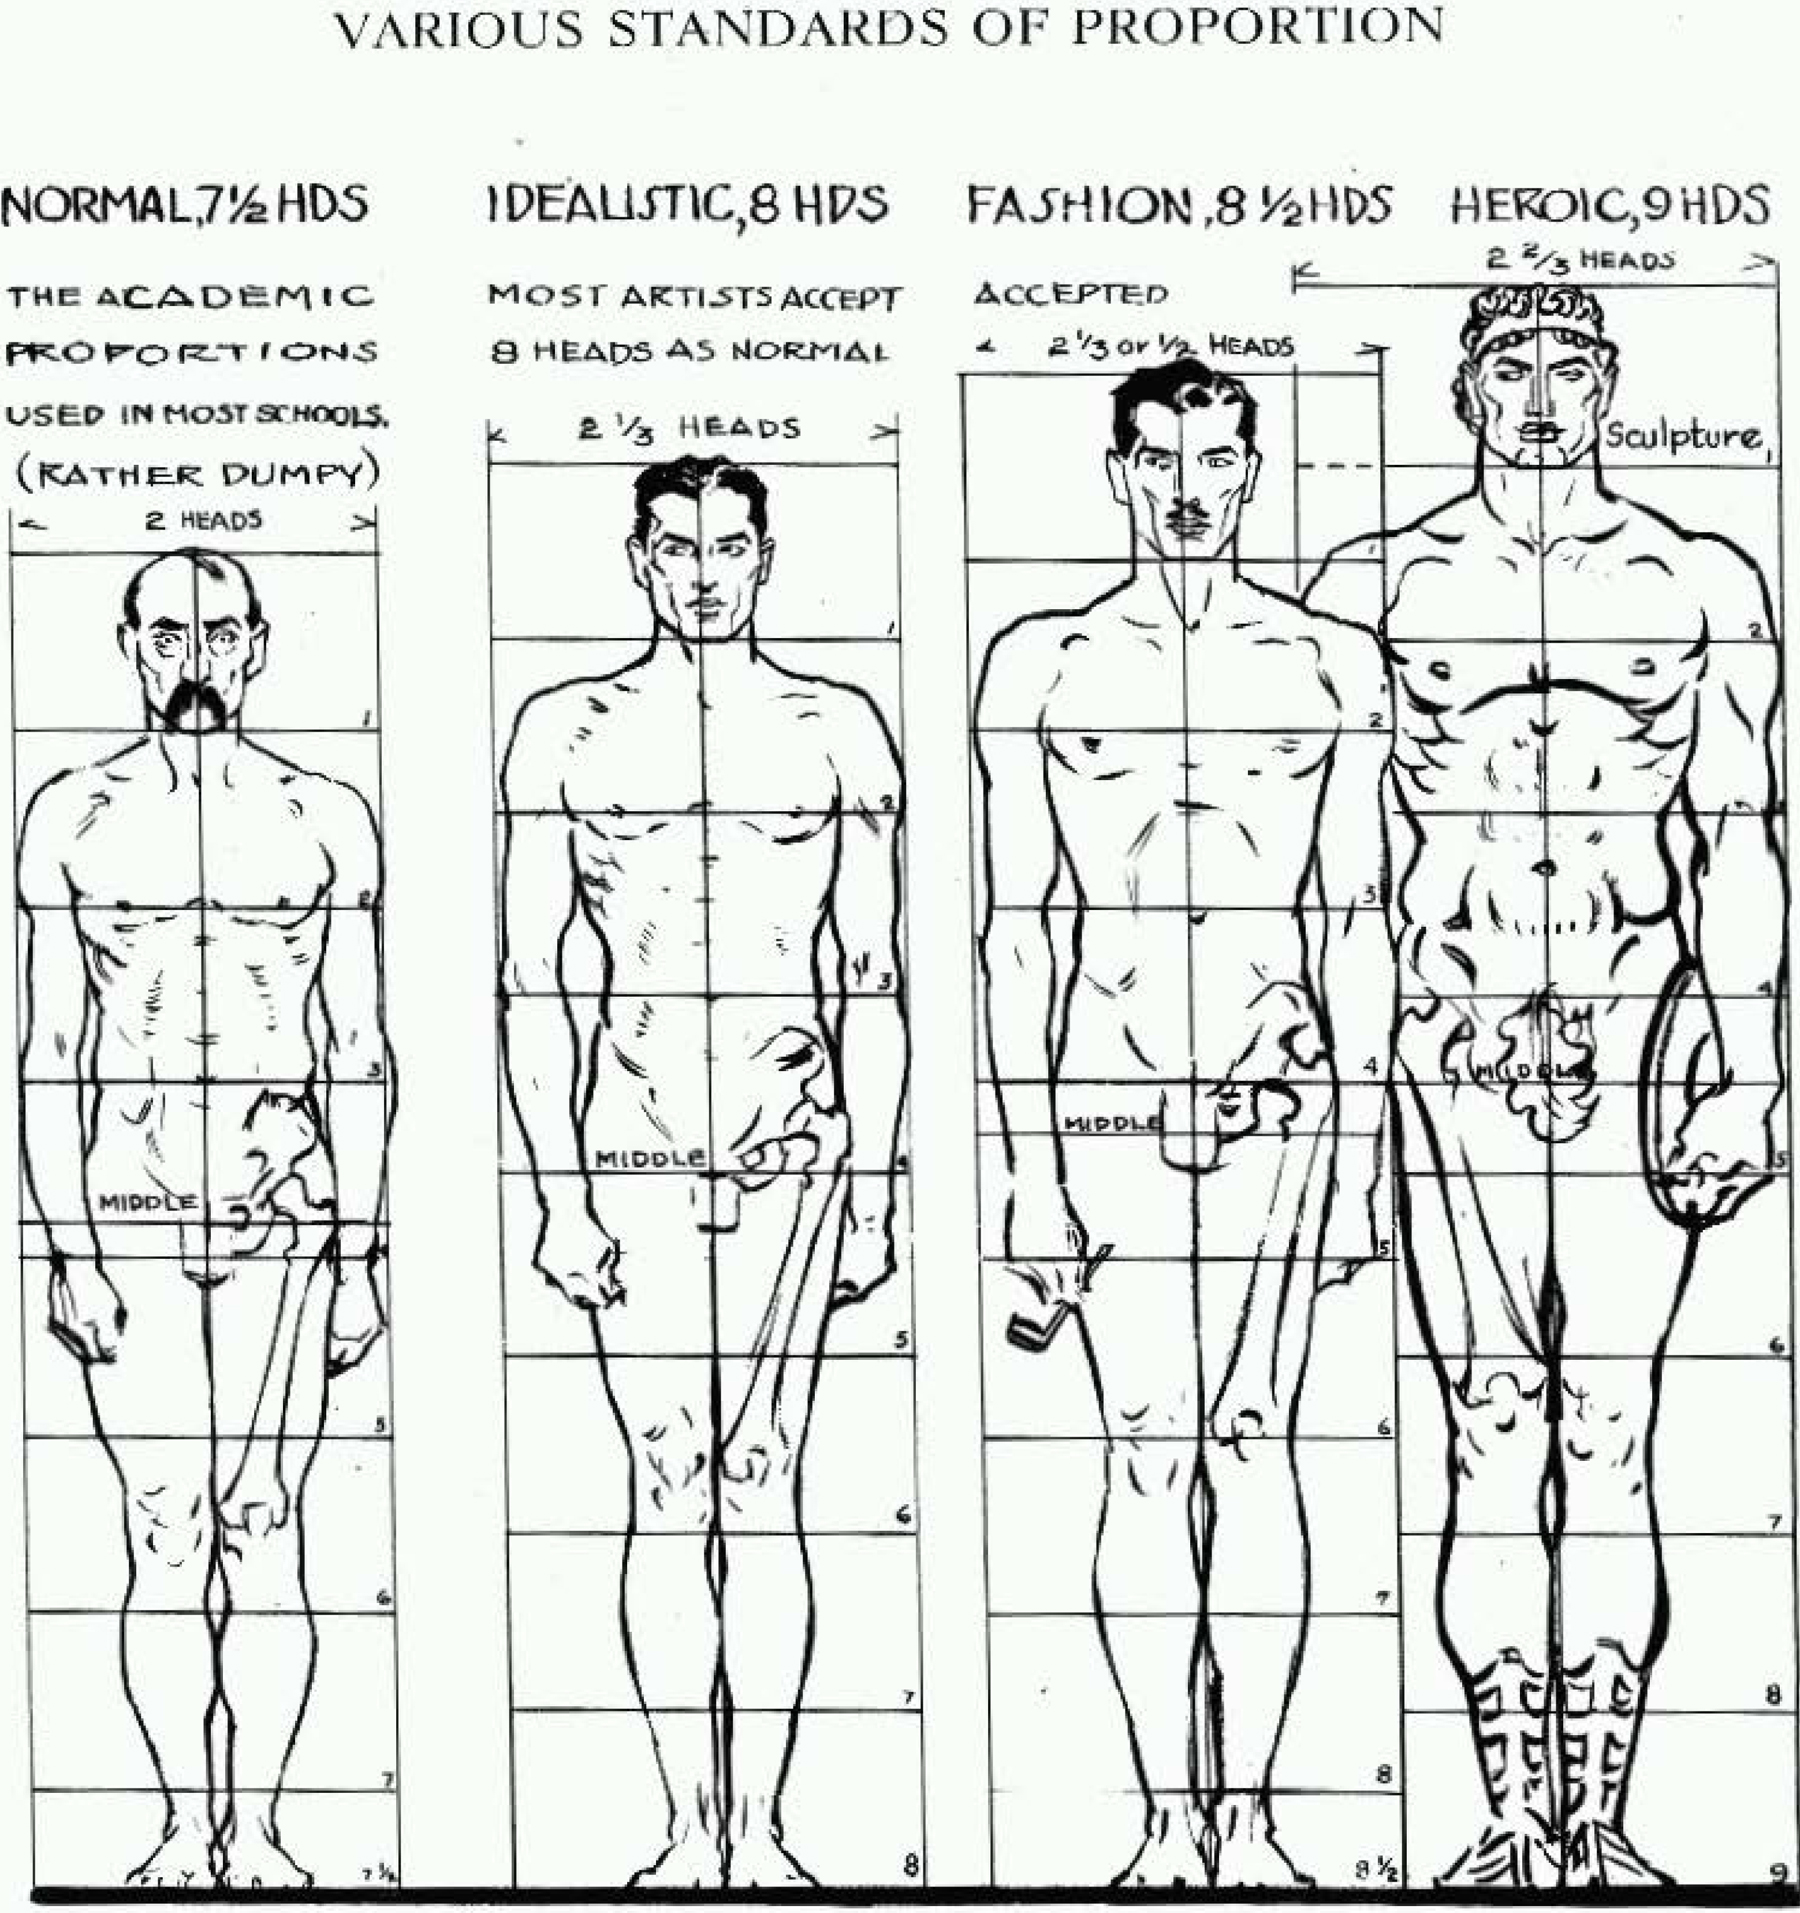 Human Body Male Proportions